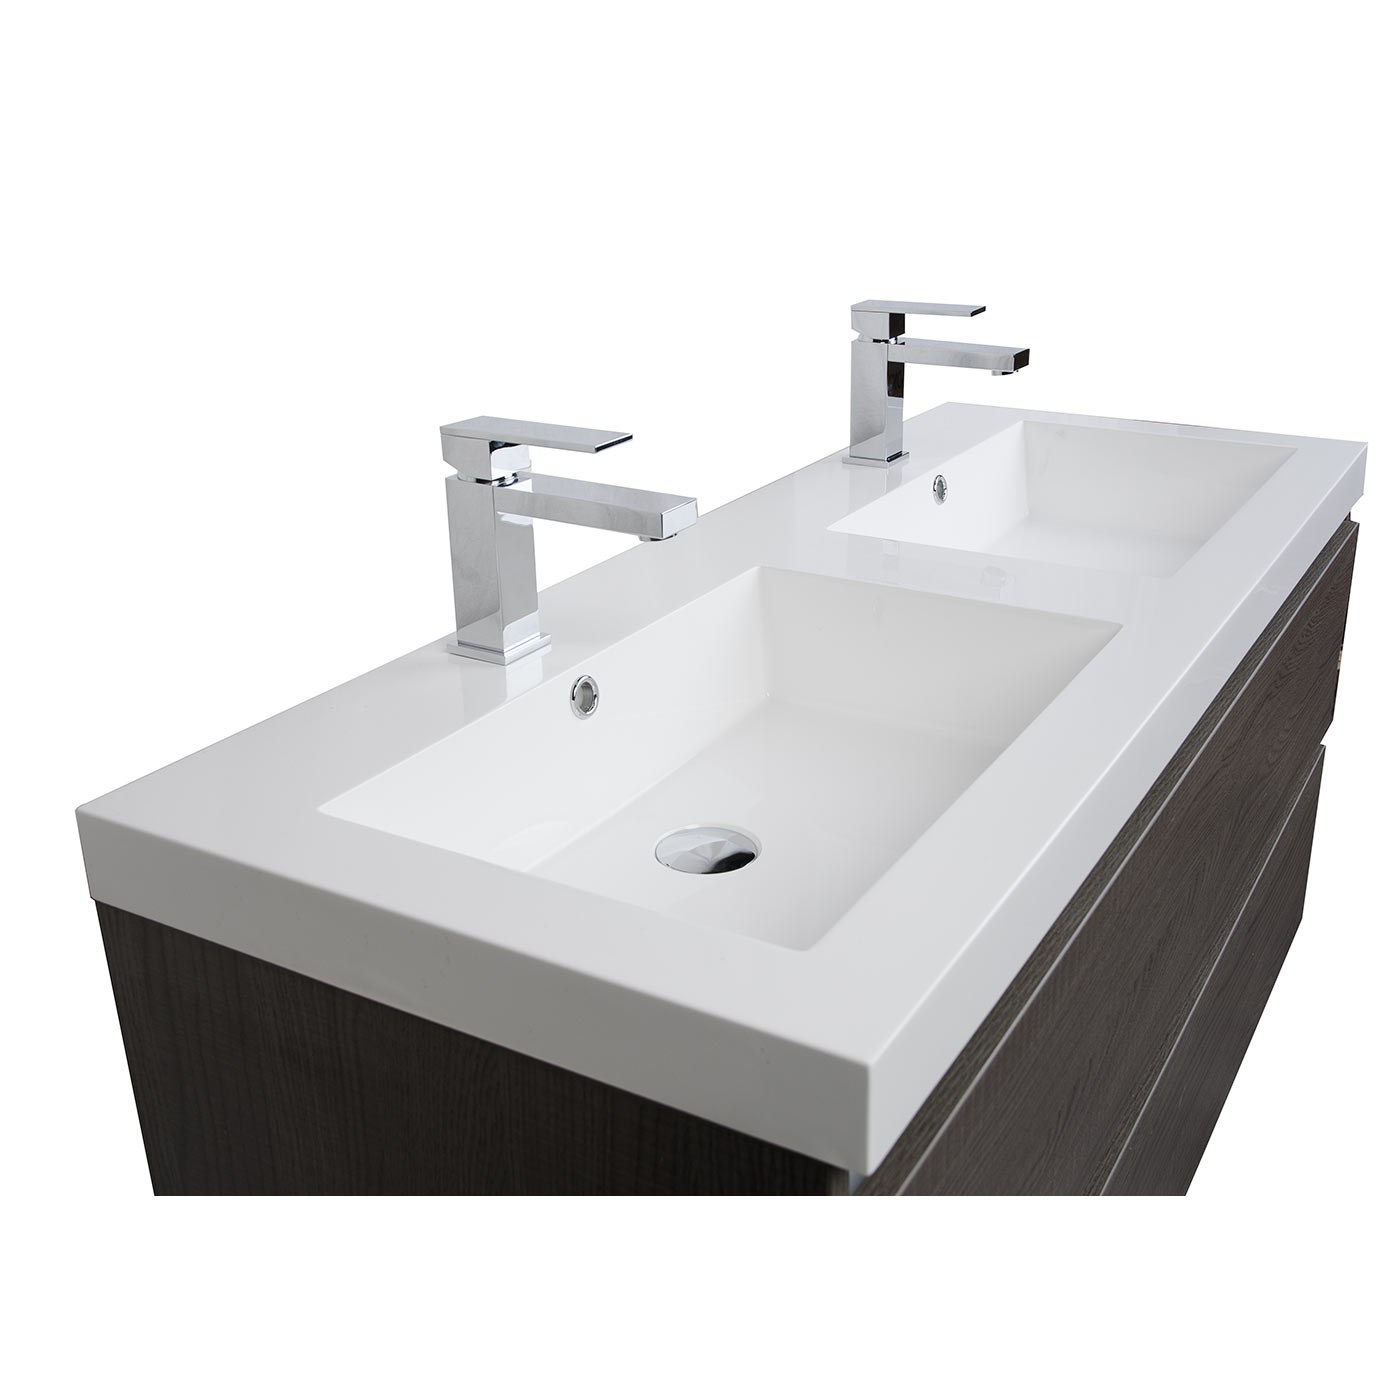 adelina another picture white antique inch of vanity sink center christian bathroom the